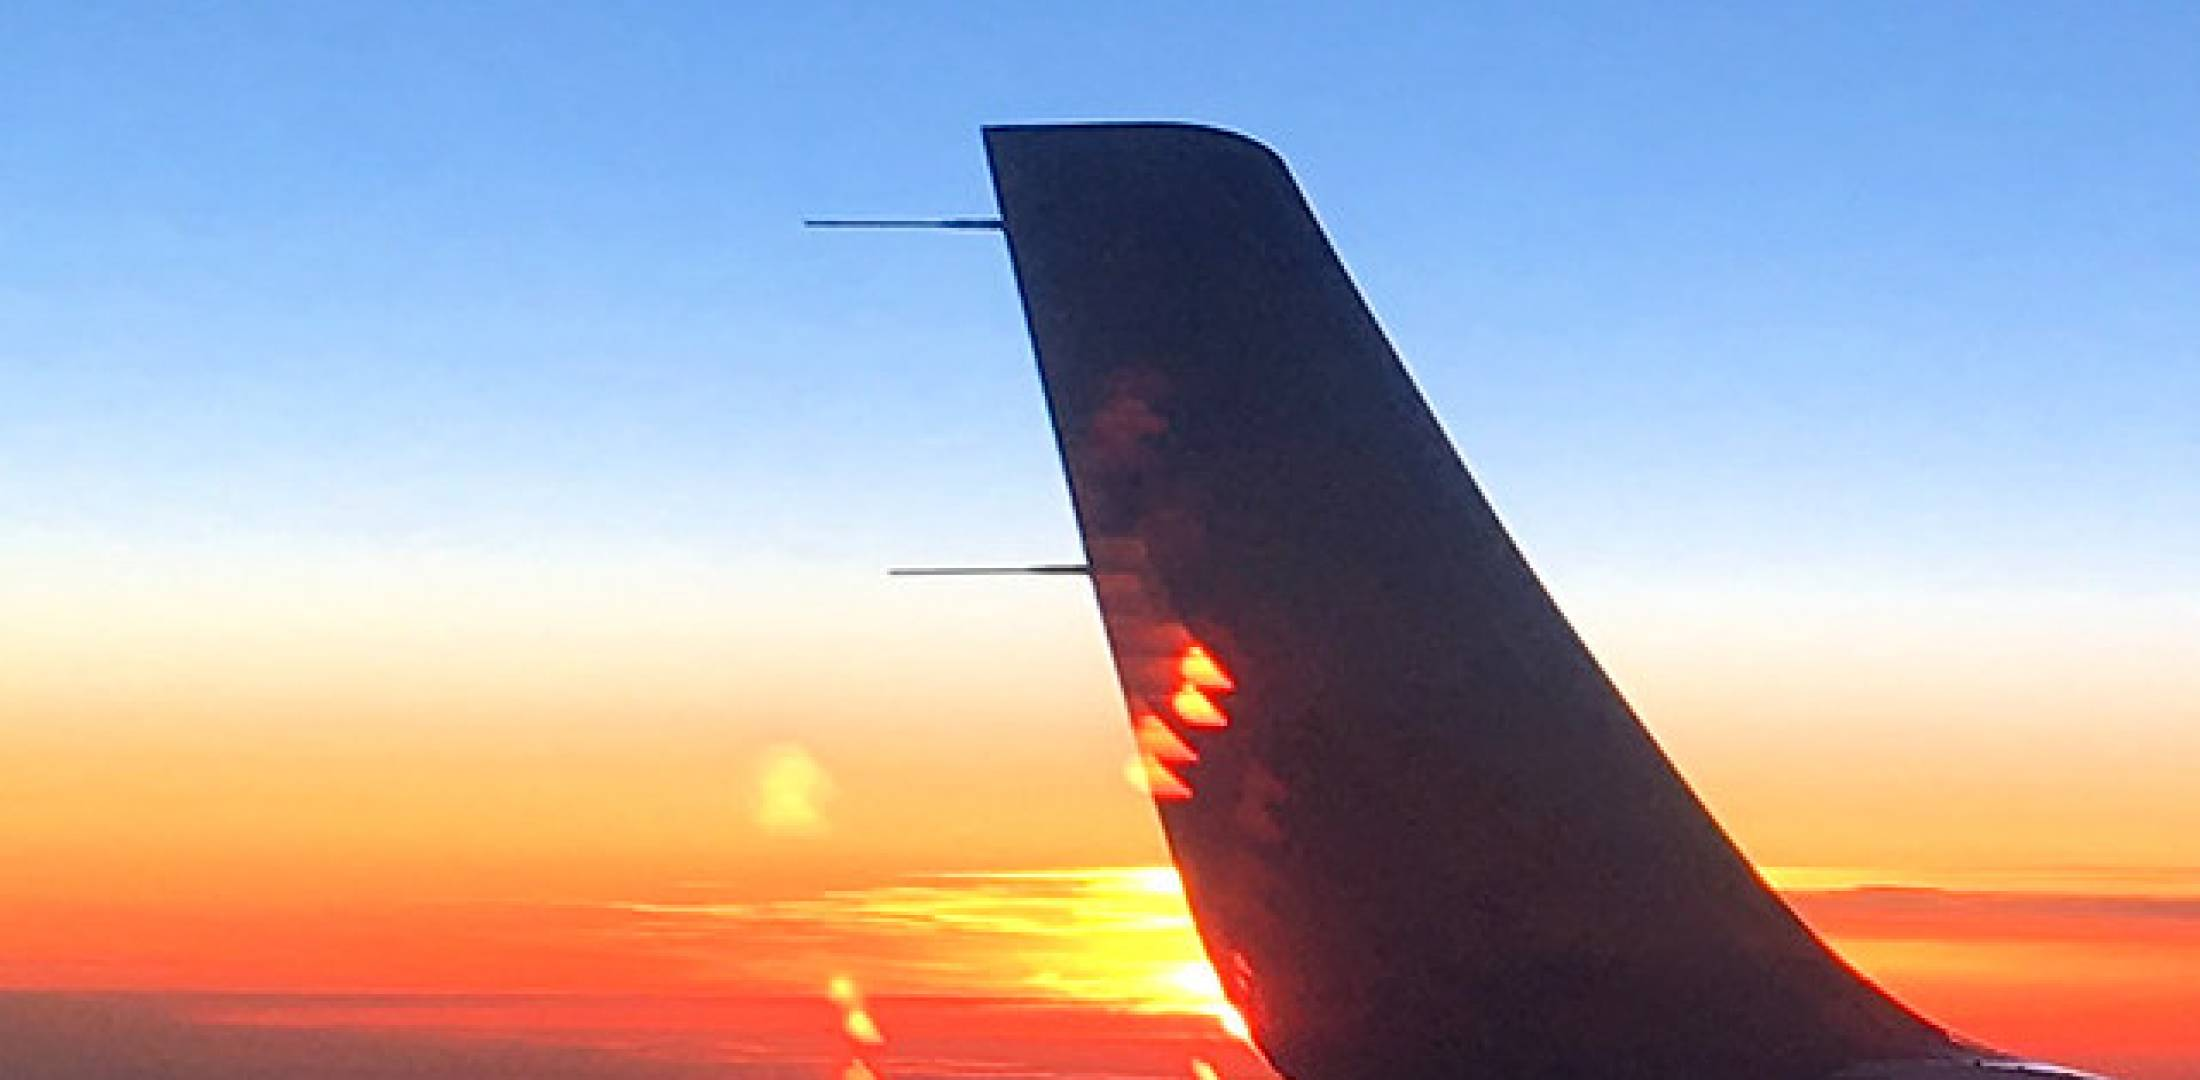 Tamarack winglet (Photo: Tamarack Aerospace)